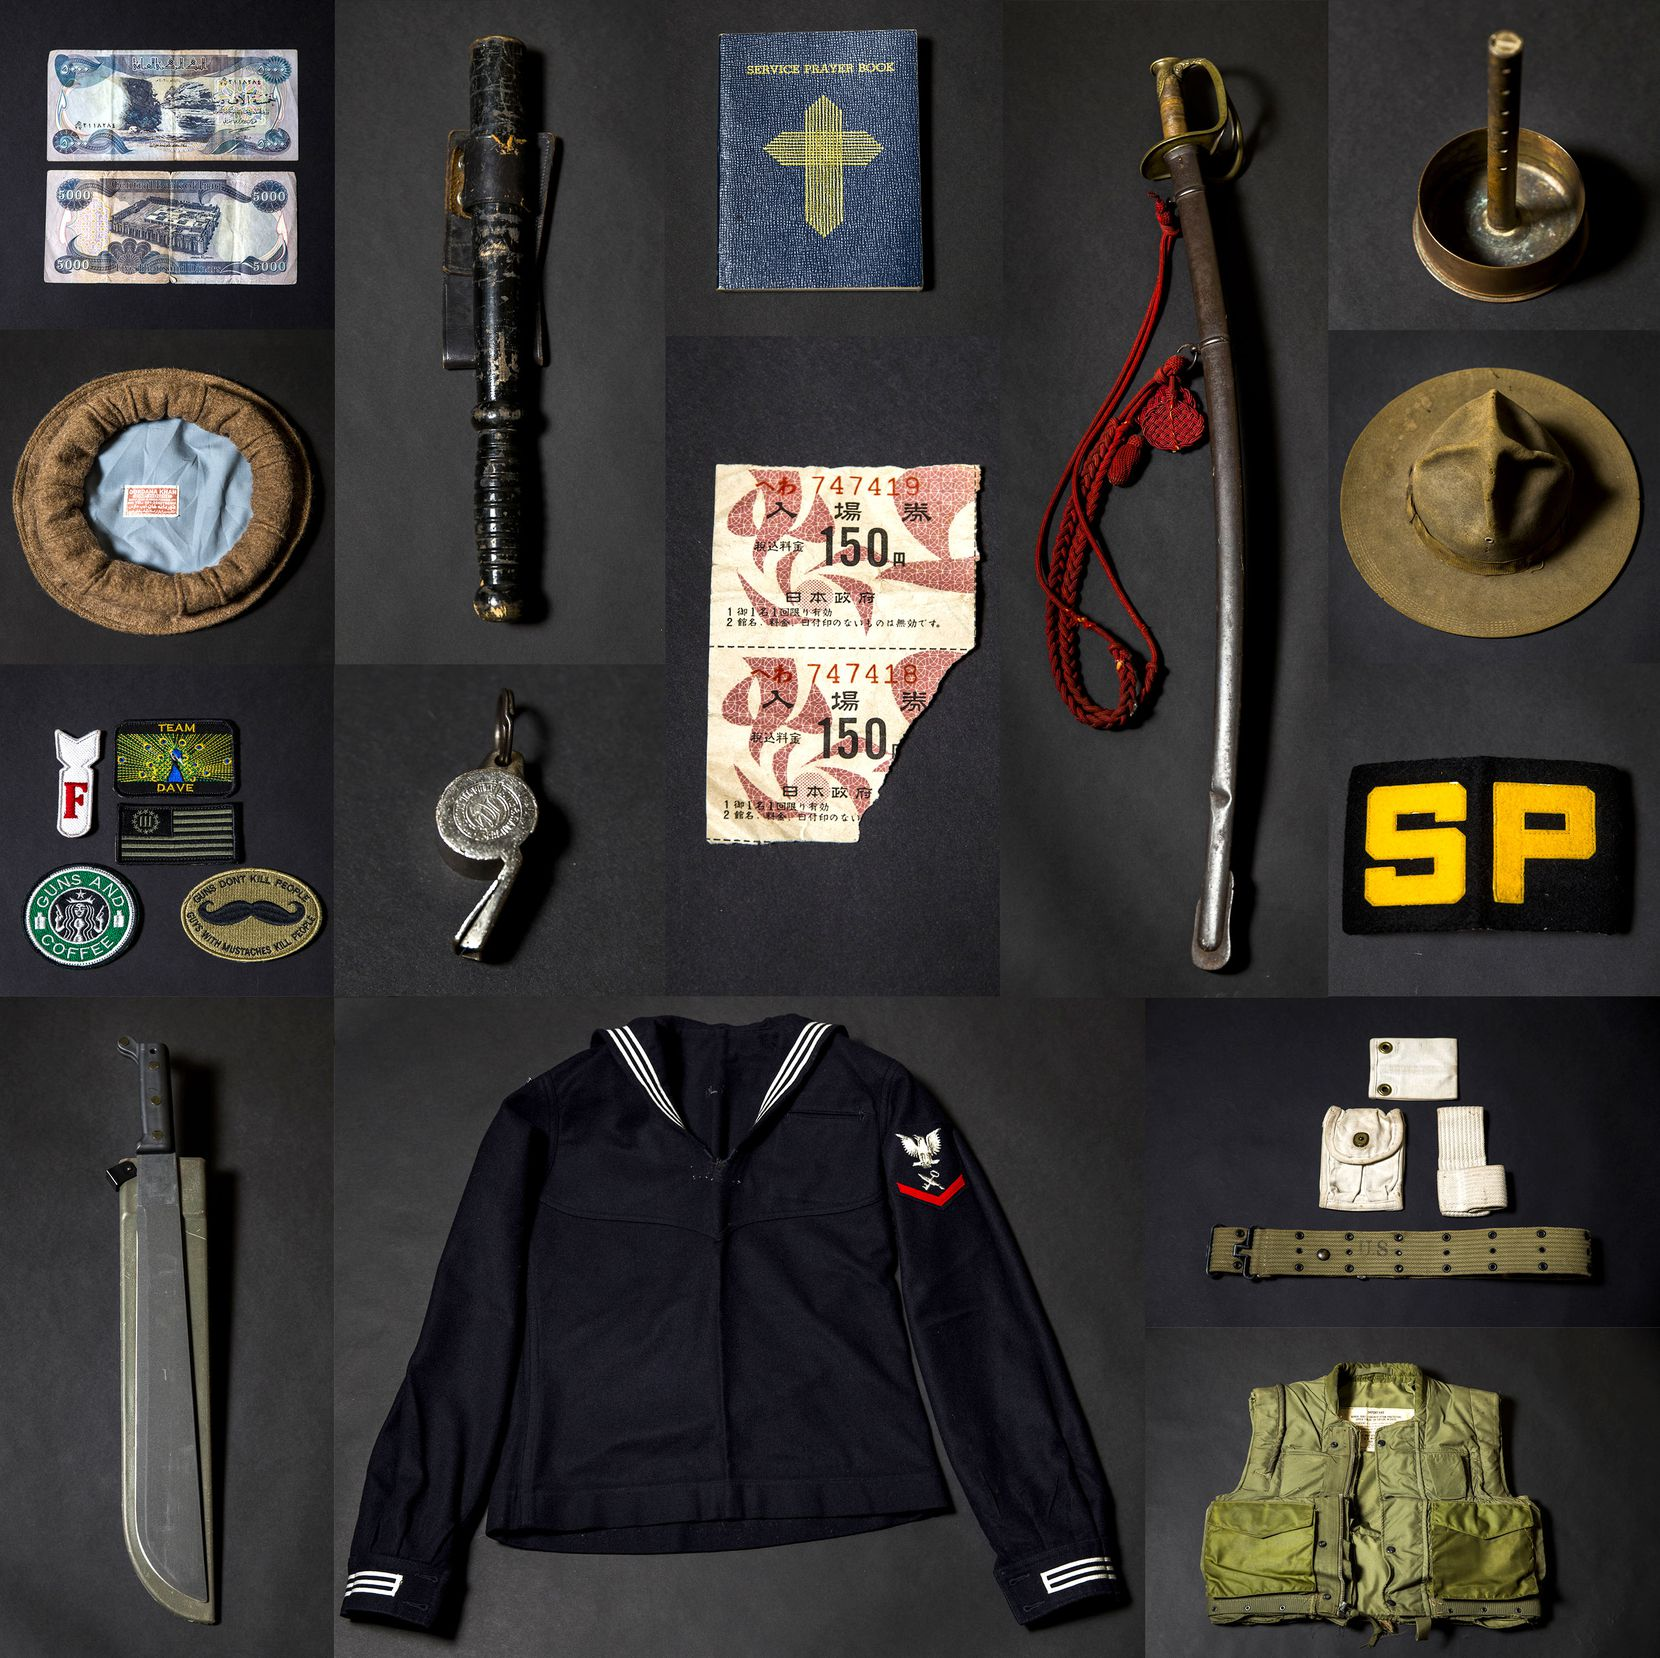 War memorabilia belonging to Andy Fancher, 18, who has filmed countless hours of interviews with veterans. Shown are items from Iraq, Vietnam, WWII and the Civil War.